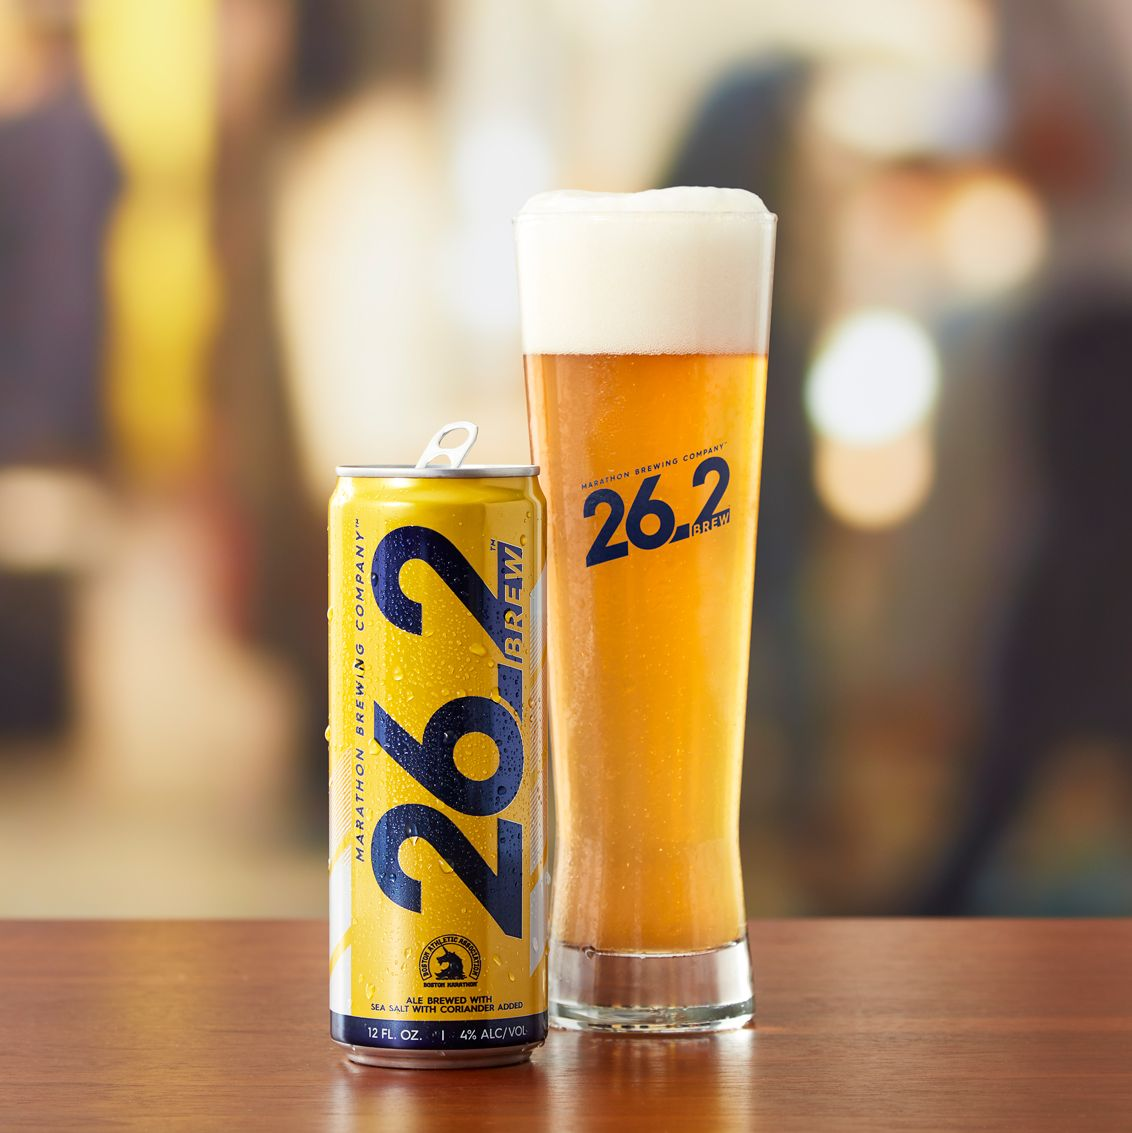 26.2 Brew Is a Beer Made for Marathon Runners by Marathon Runners